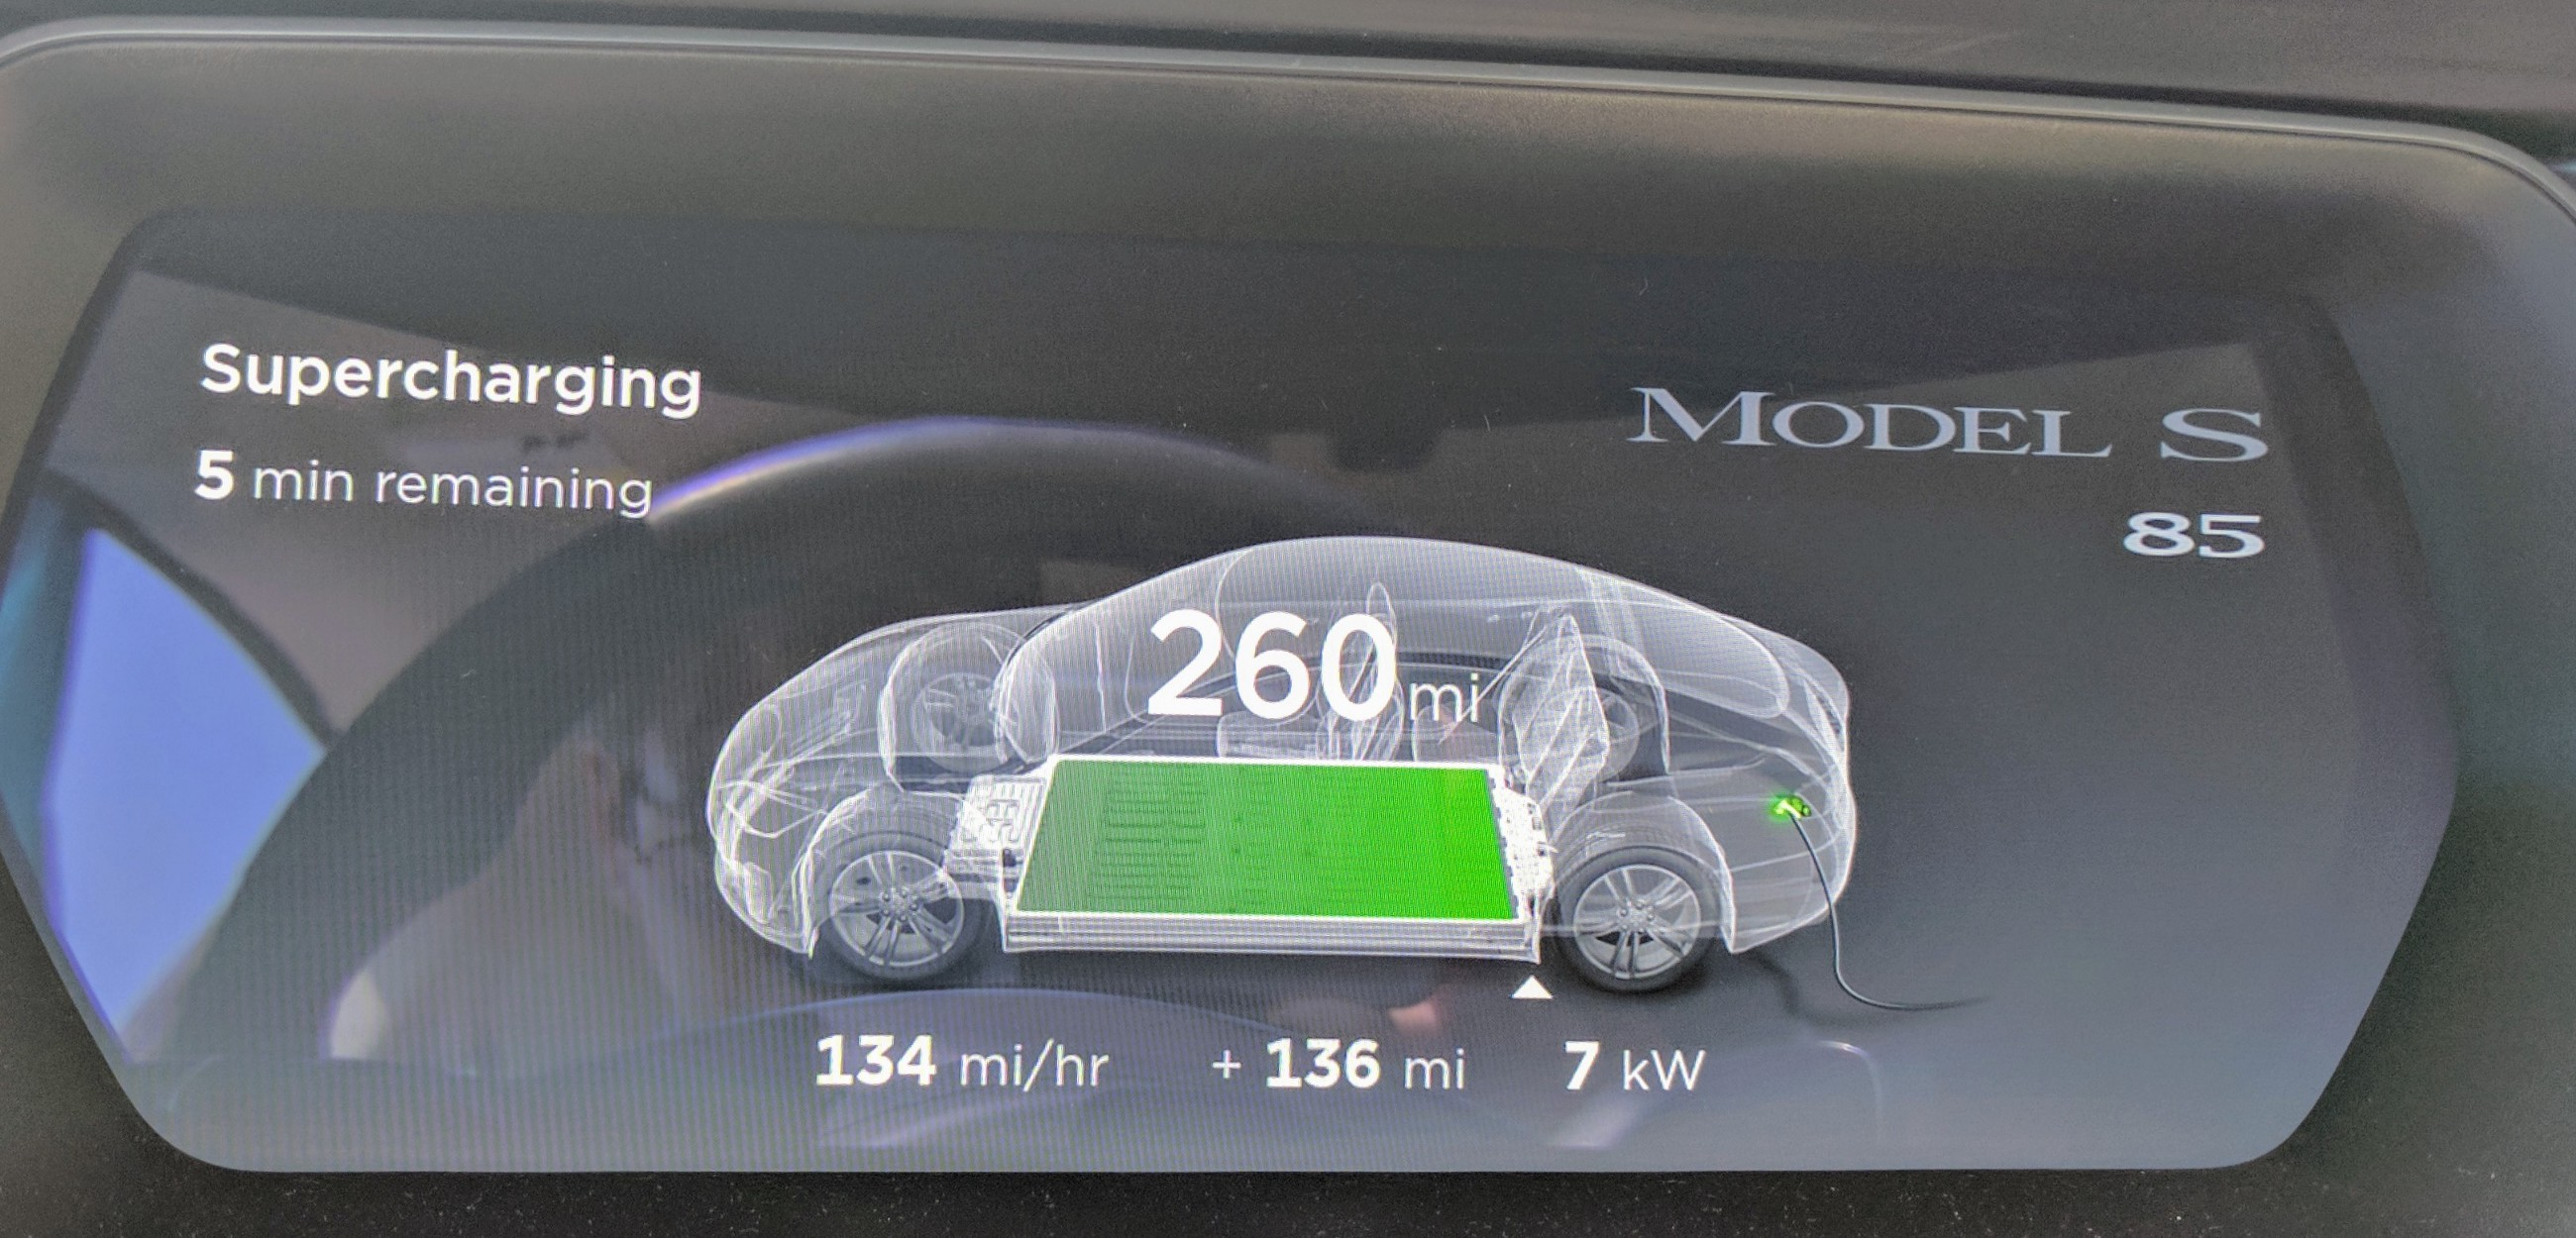 The Most Frequent Question For Electric Vehicle Owners Is How Long Does It Take To Charge In A Previous Post Led Reality Of Charging An Ev On